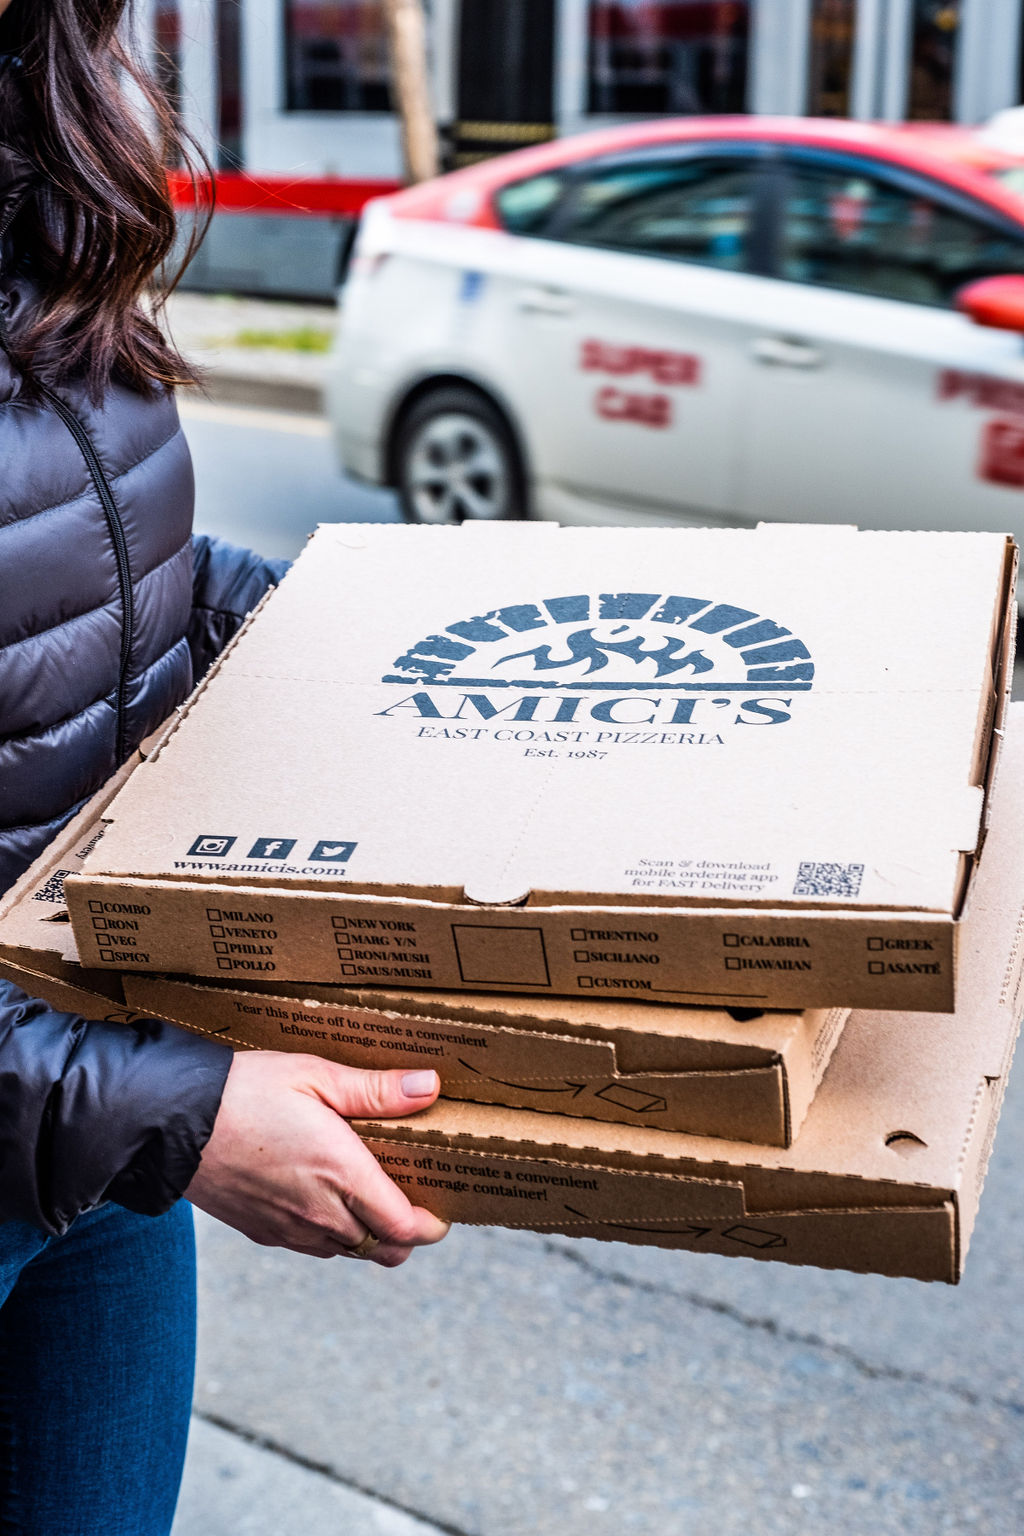 amicis-takeout-pizza-boxes-portrait.jpg